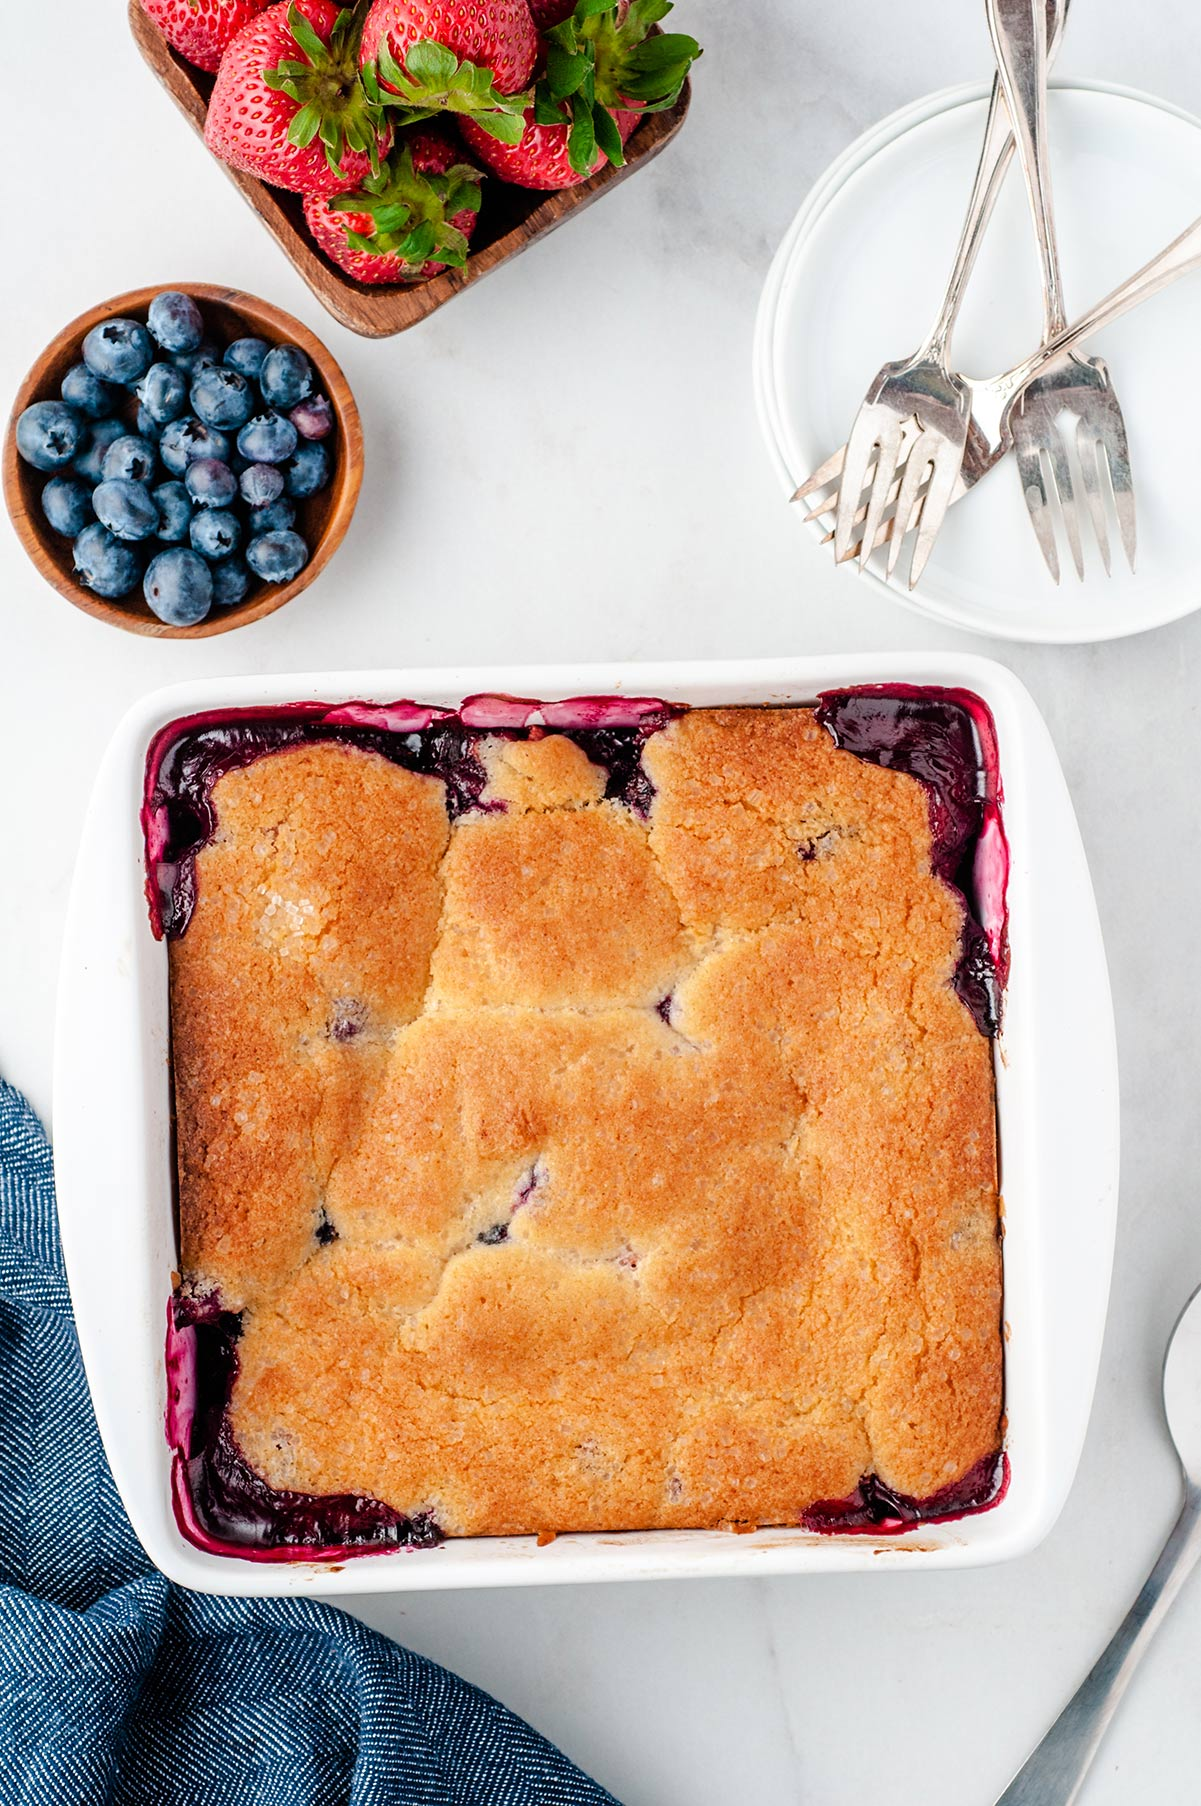 berry cobbler in a white baking dish with strawberries and blueberries on the side. Forks and a small plate on the side.